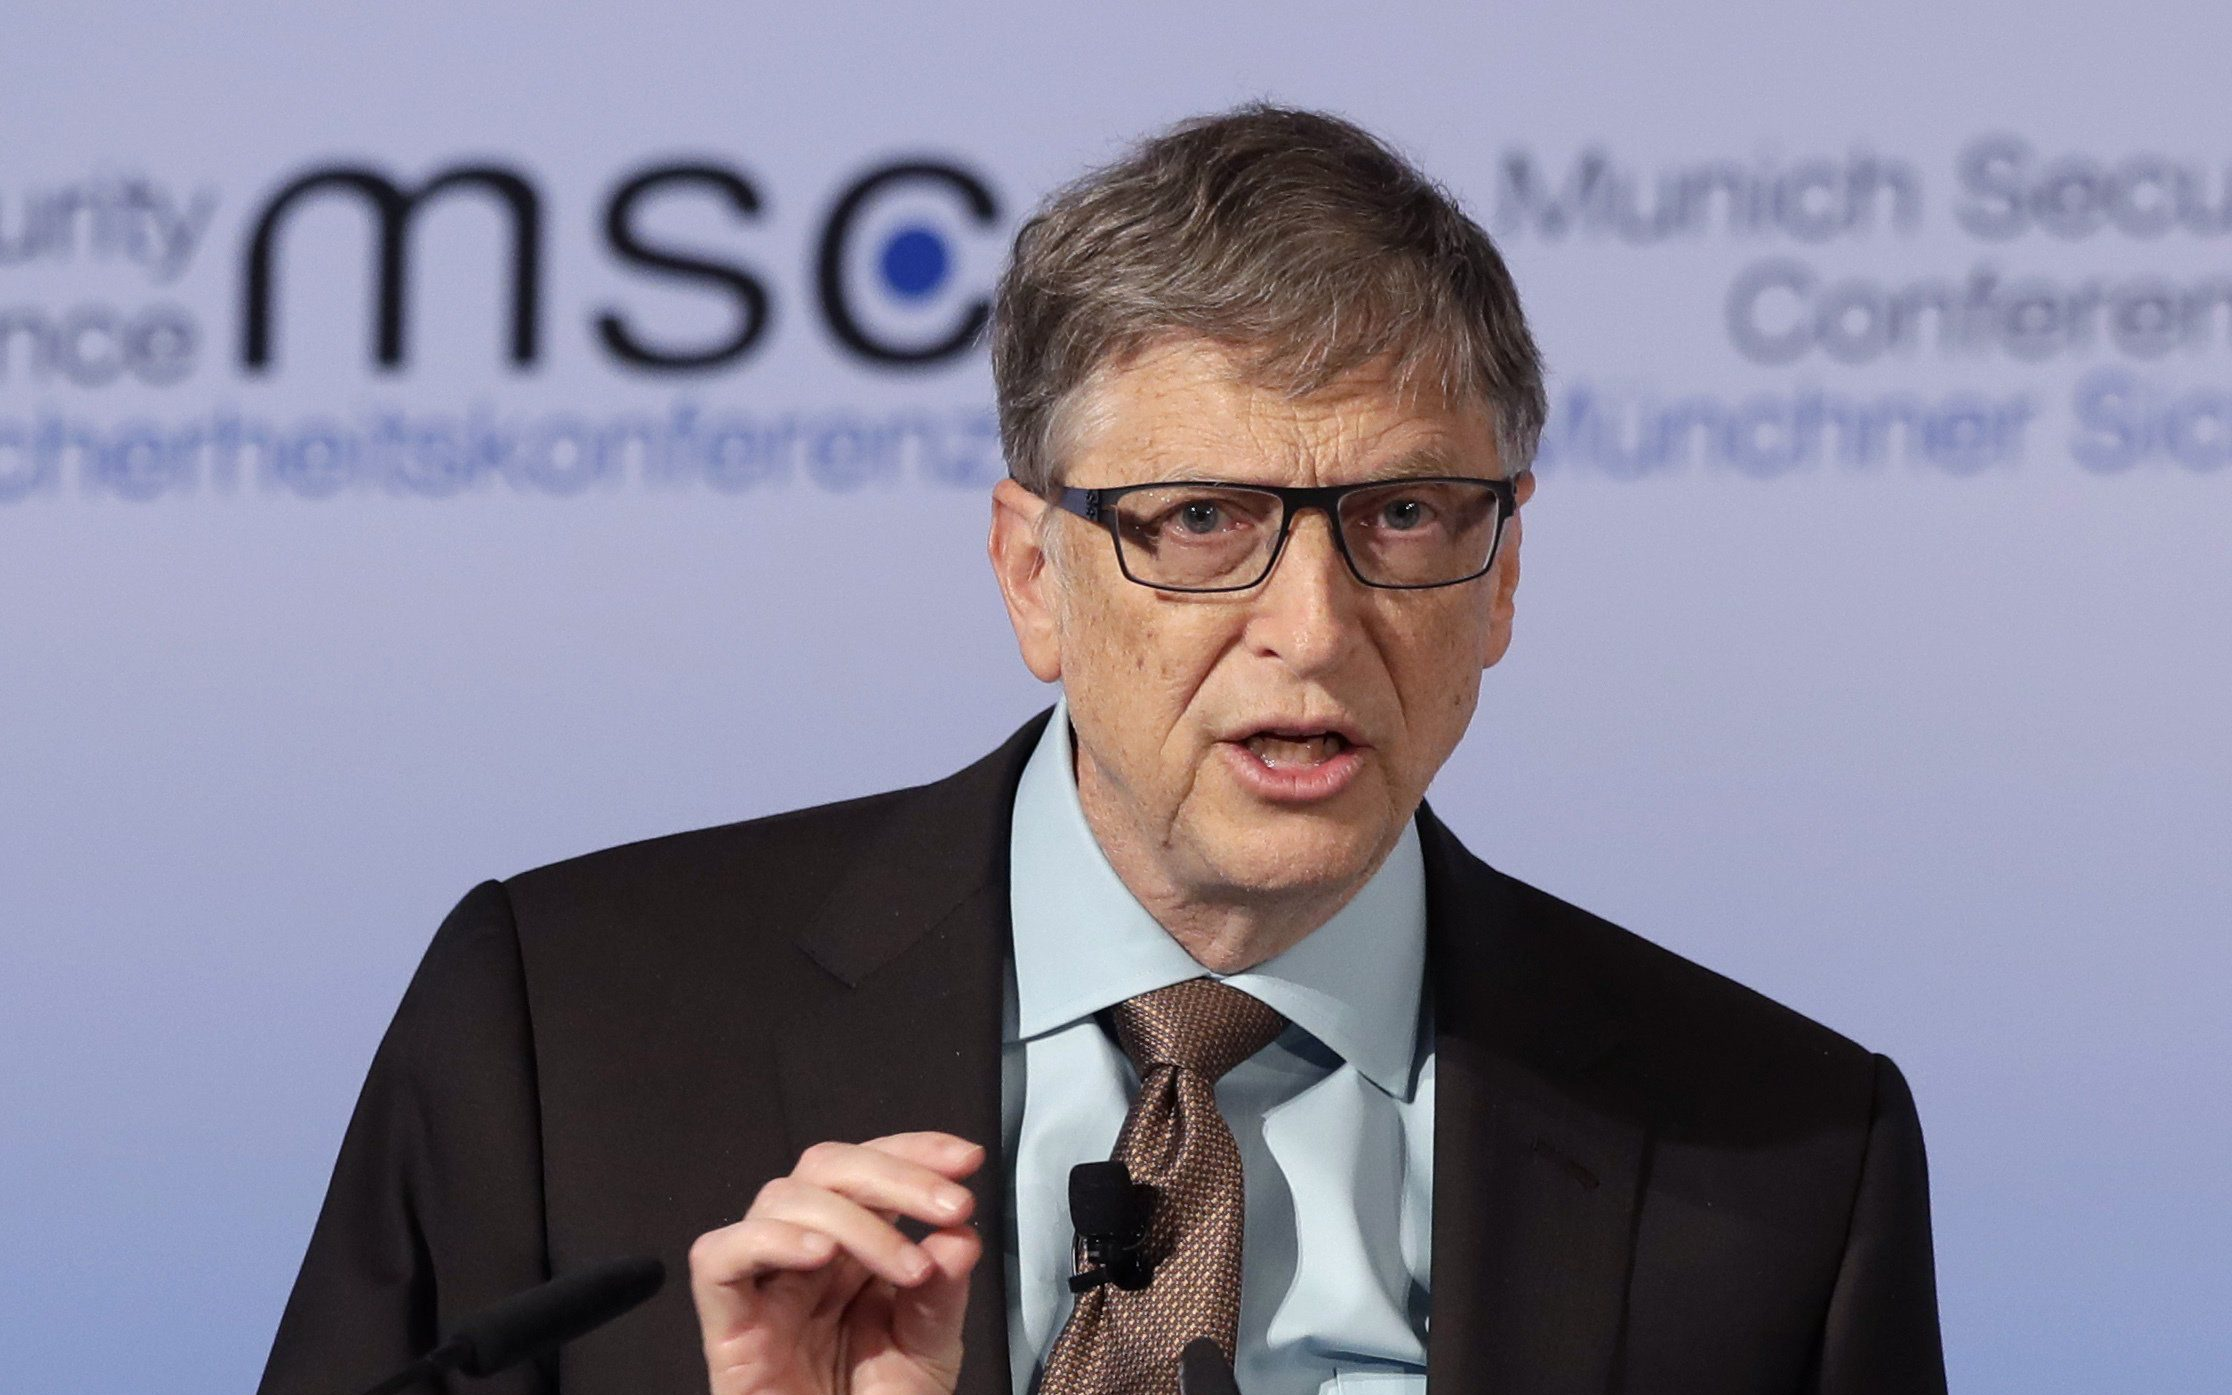 Bill Gates thinks there's going to be a global pandemic that will kill millions